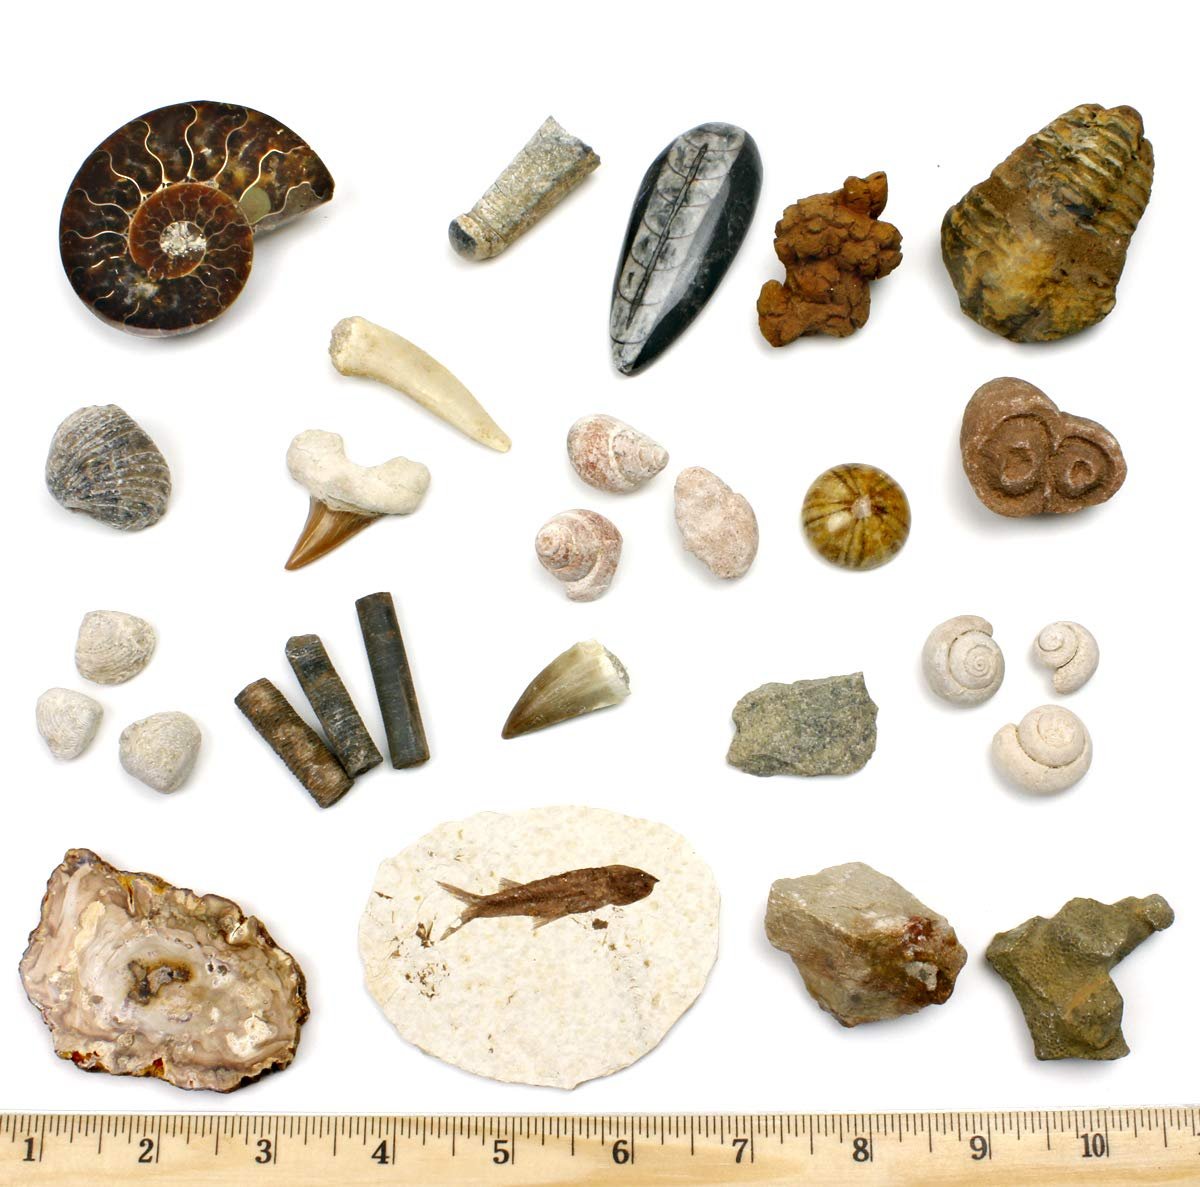 Dancing Bear Fossil Collection Set, 20 Real Specimens: Trilobite, Ammonite, Fish Fossil, Shark Tooth, Petrified Wood, Dinosaur Bone, Fossil Book, Time Scale, ID Cards, Magnifying Glass, Science Kit by Dancing Bear